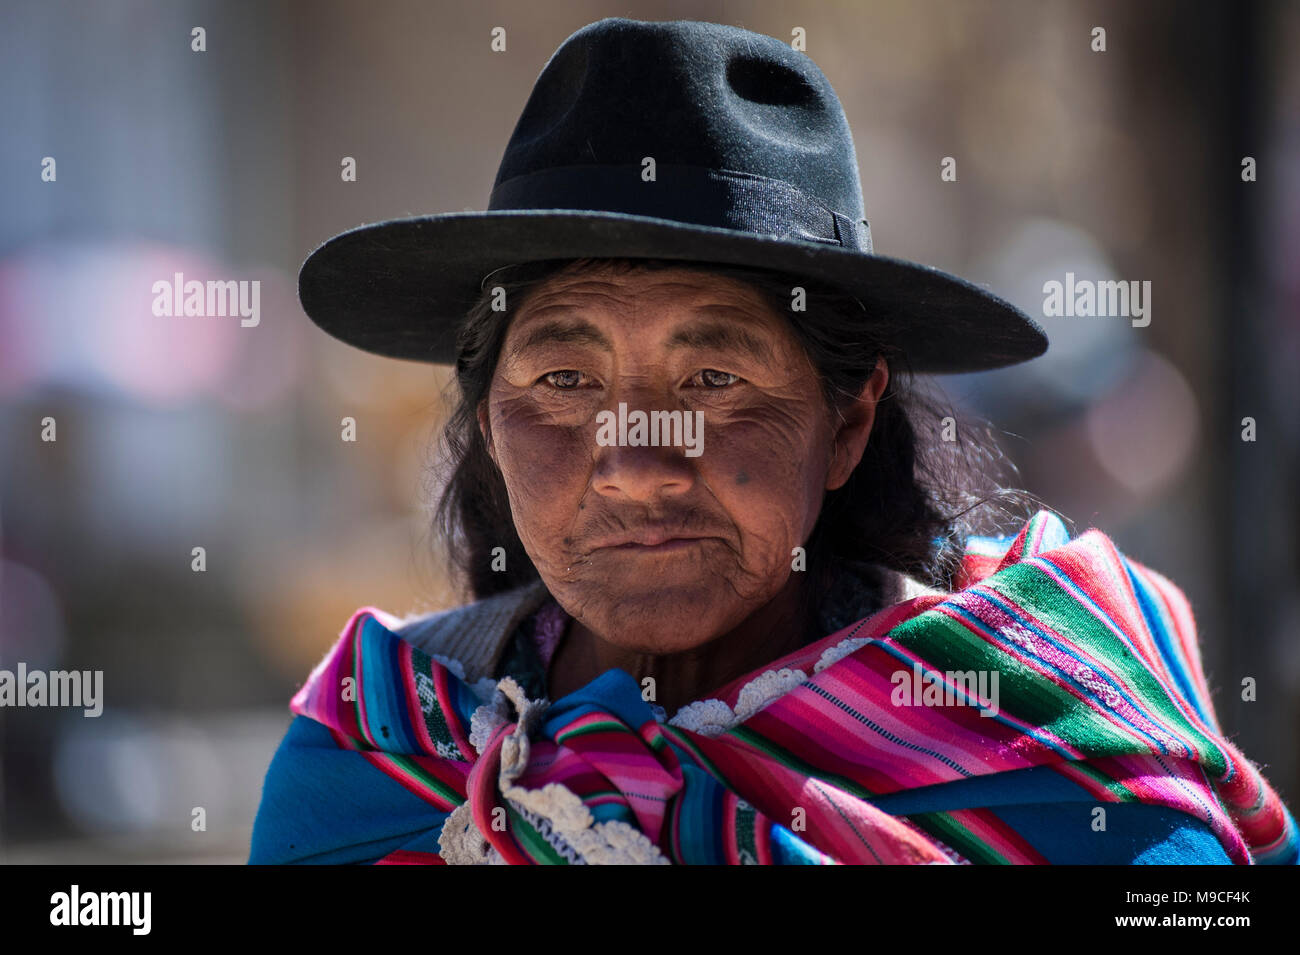 Unidentified indigenous native Quechua woman with traditional tribal clothing and hat, at the Tarabuco Sunday Market, Bolivia - Stock Image